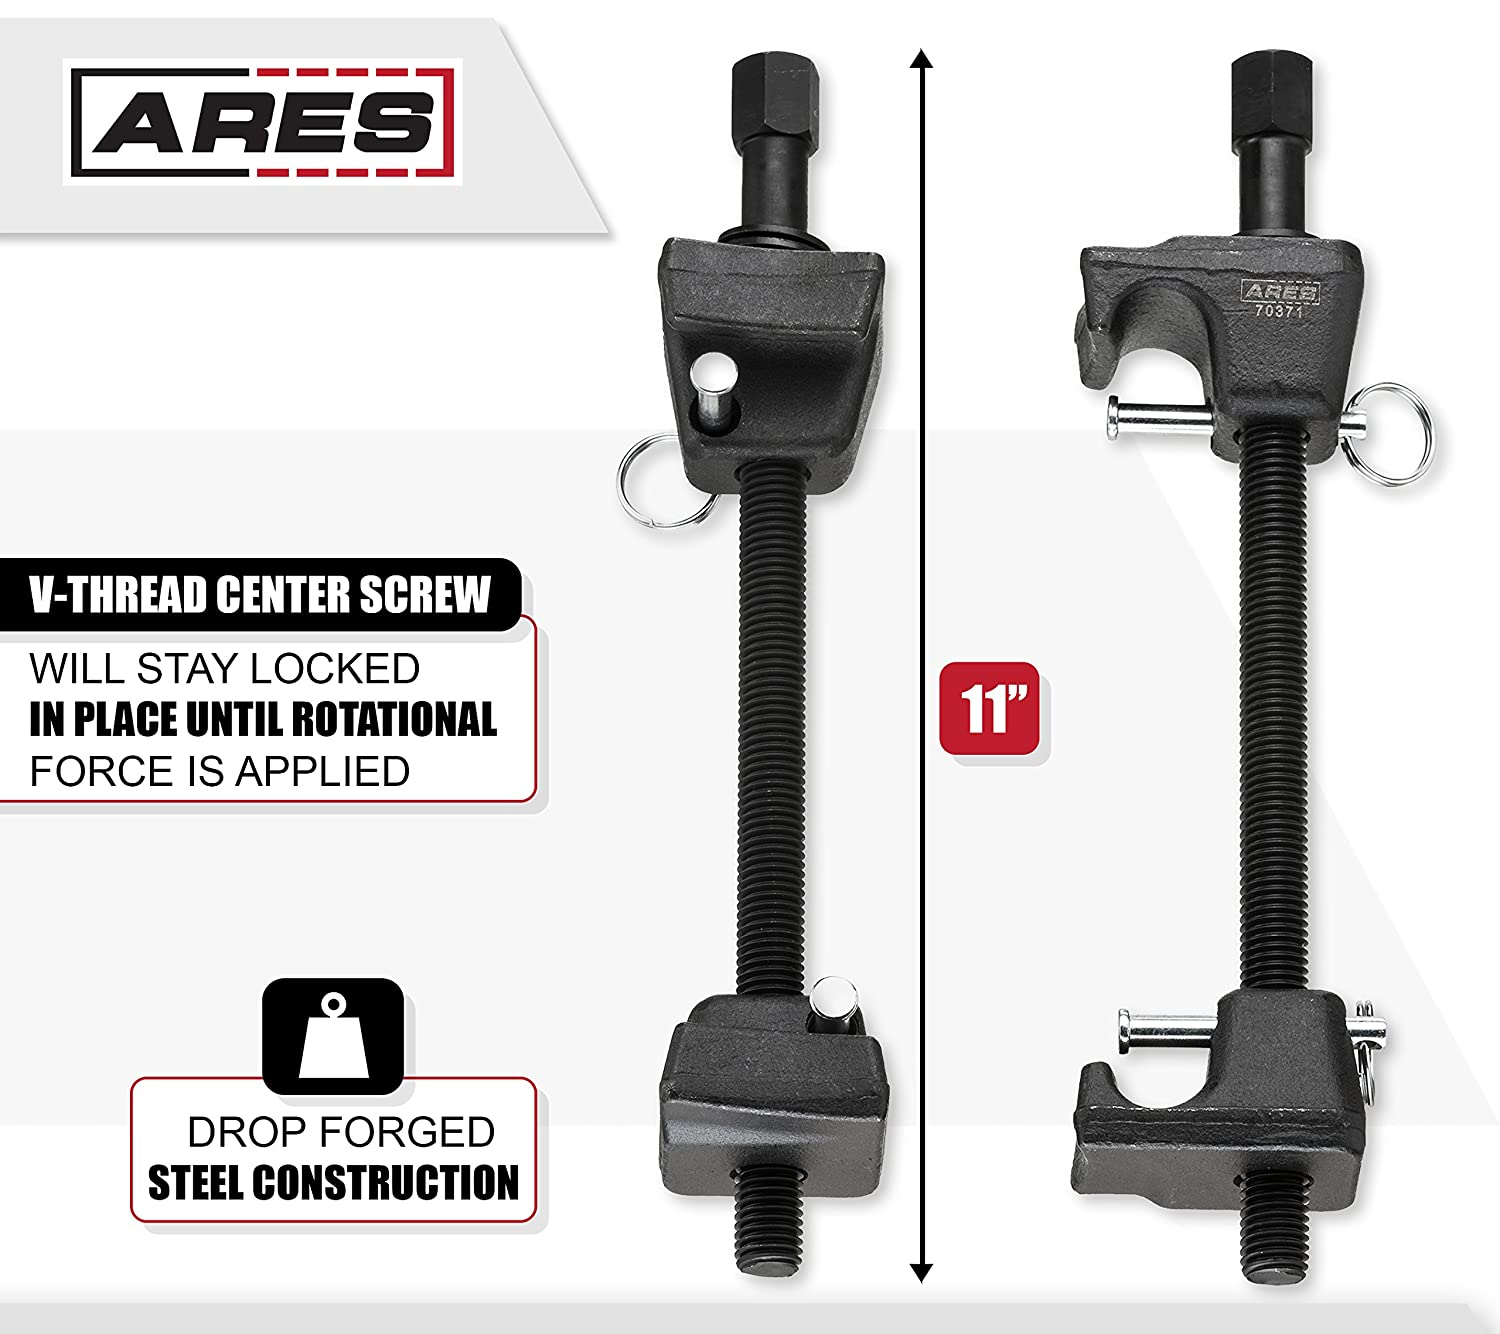 and Damaged Struts ARES 70371 for Repairs on Bent Struts Macpherson Strut Spring Compressor Strut Tubes Drop Forged Jaws with Safety Pins for Safe and Easy Compression